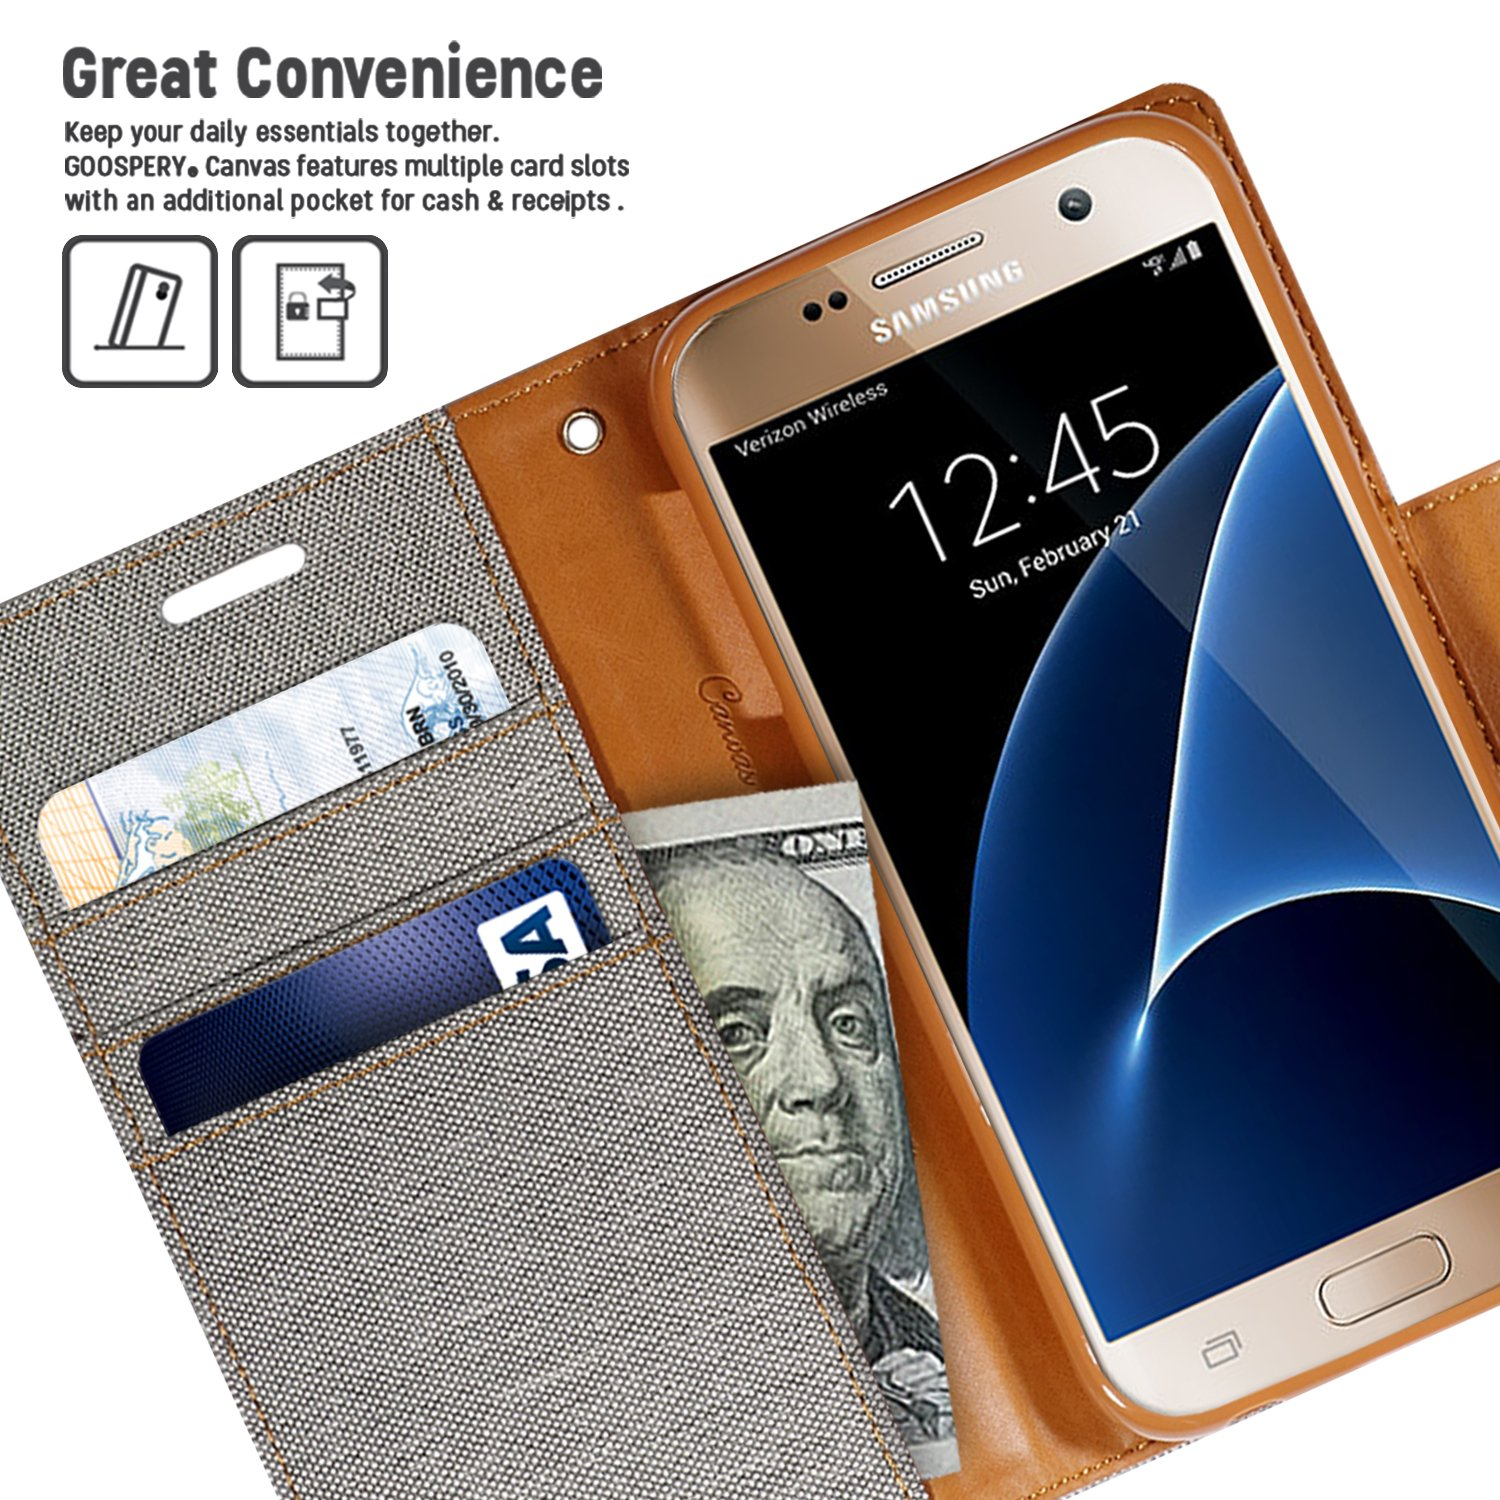 Galaxy S7 Case Drop Protection Goospery Canvas Diary Denim Samsung S6 Red Material Wallet Id Card Cash Slot With Stand Flip Cover For Gray